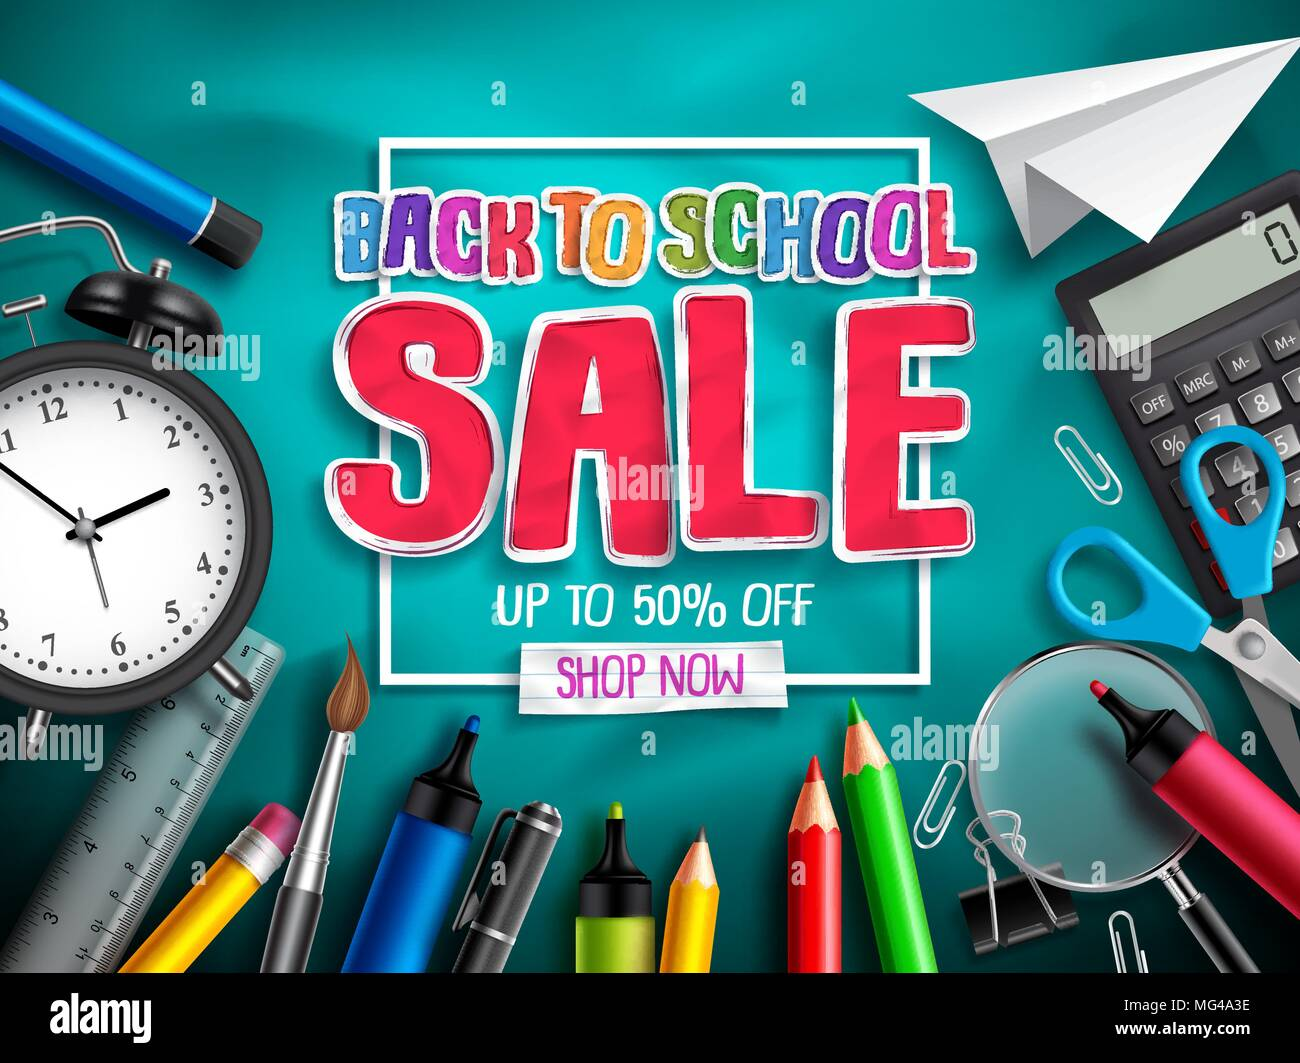 Back To School Sale Vector Banner Design For Discount Promotion With School Supplies Education Elements And Sale Text In Textured Background Vector Stock Vector Image Art Alamy